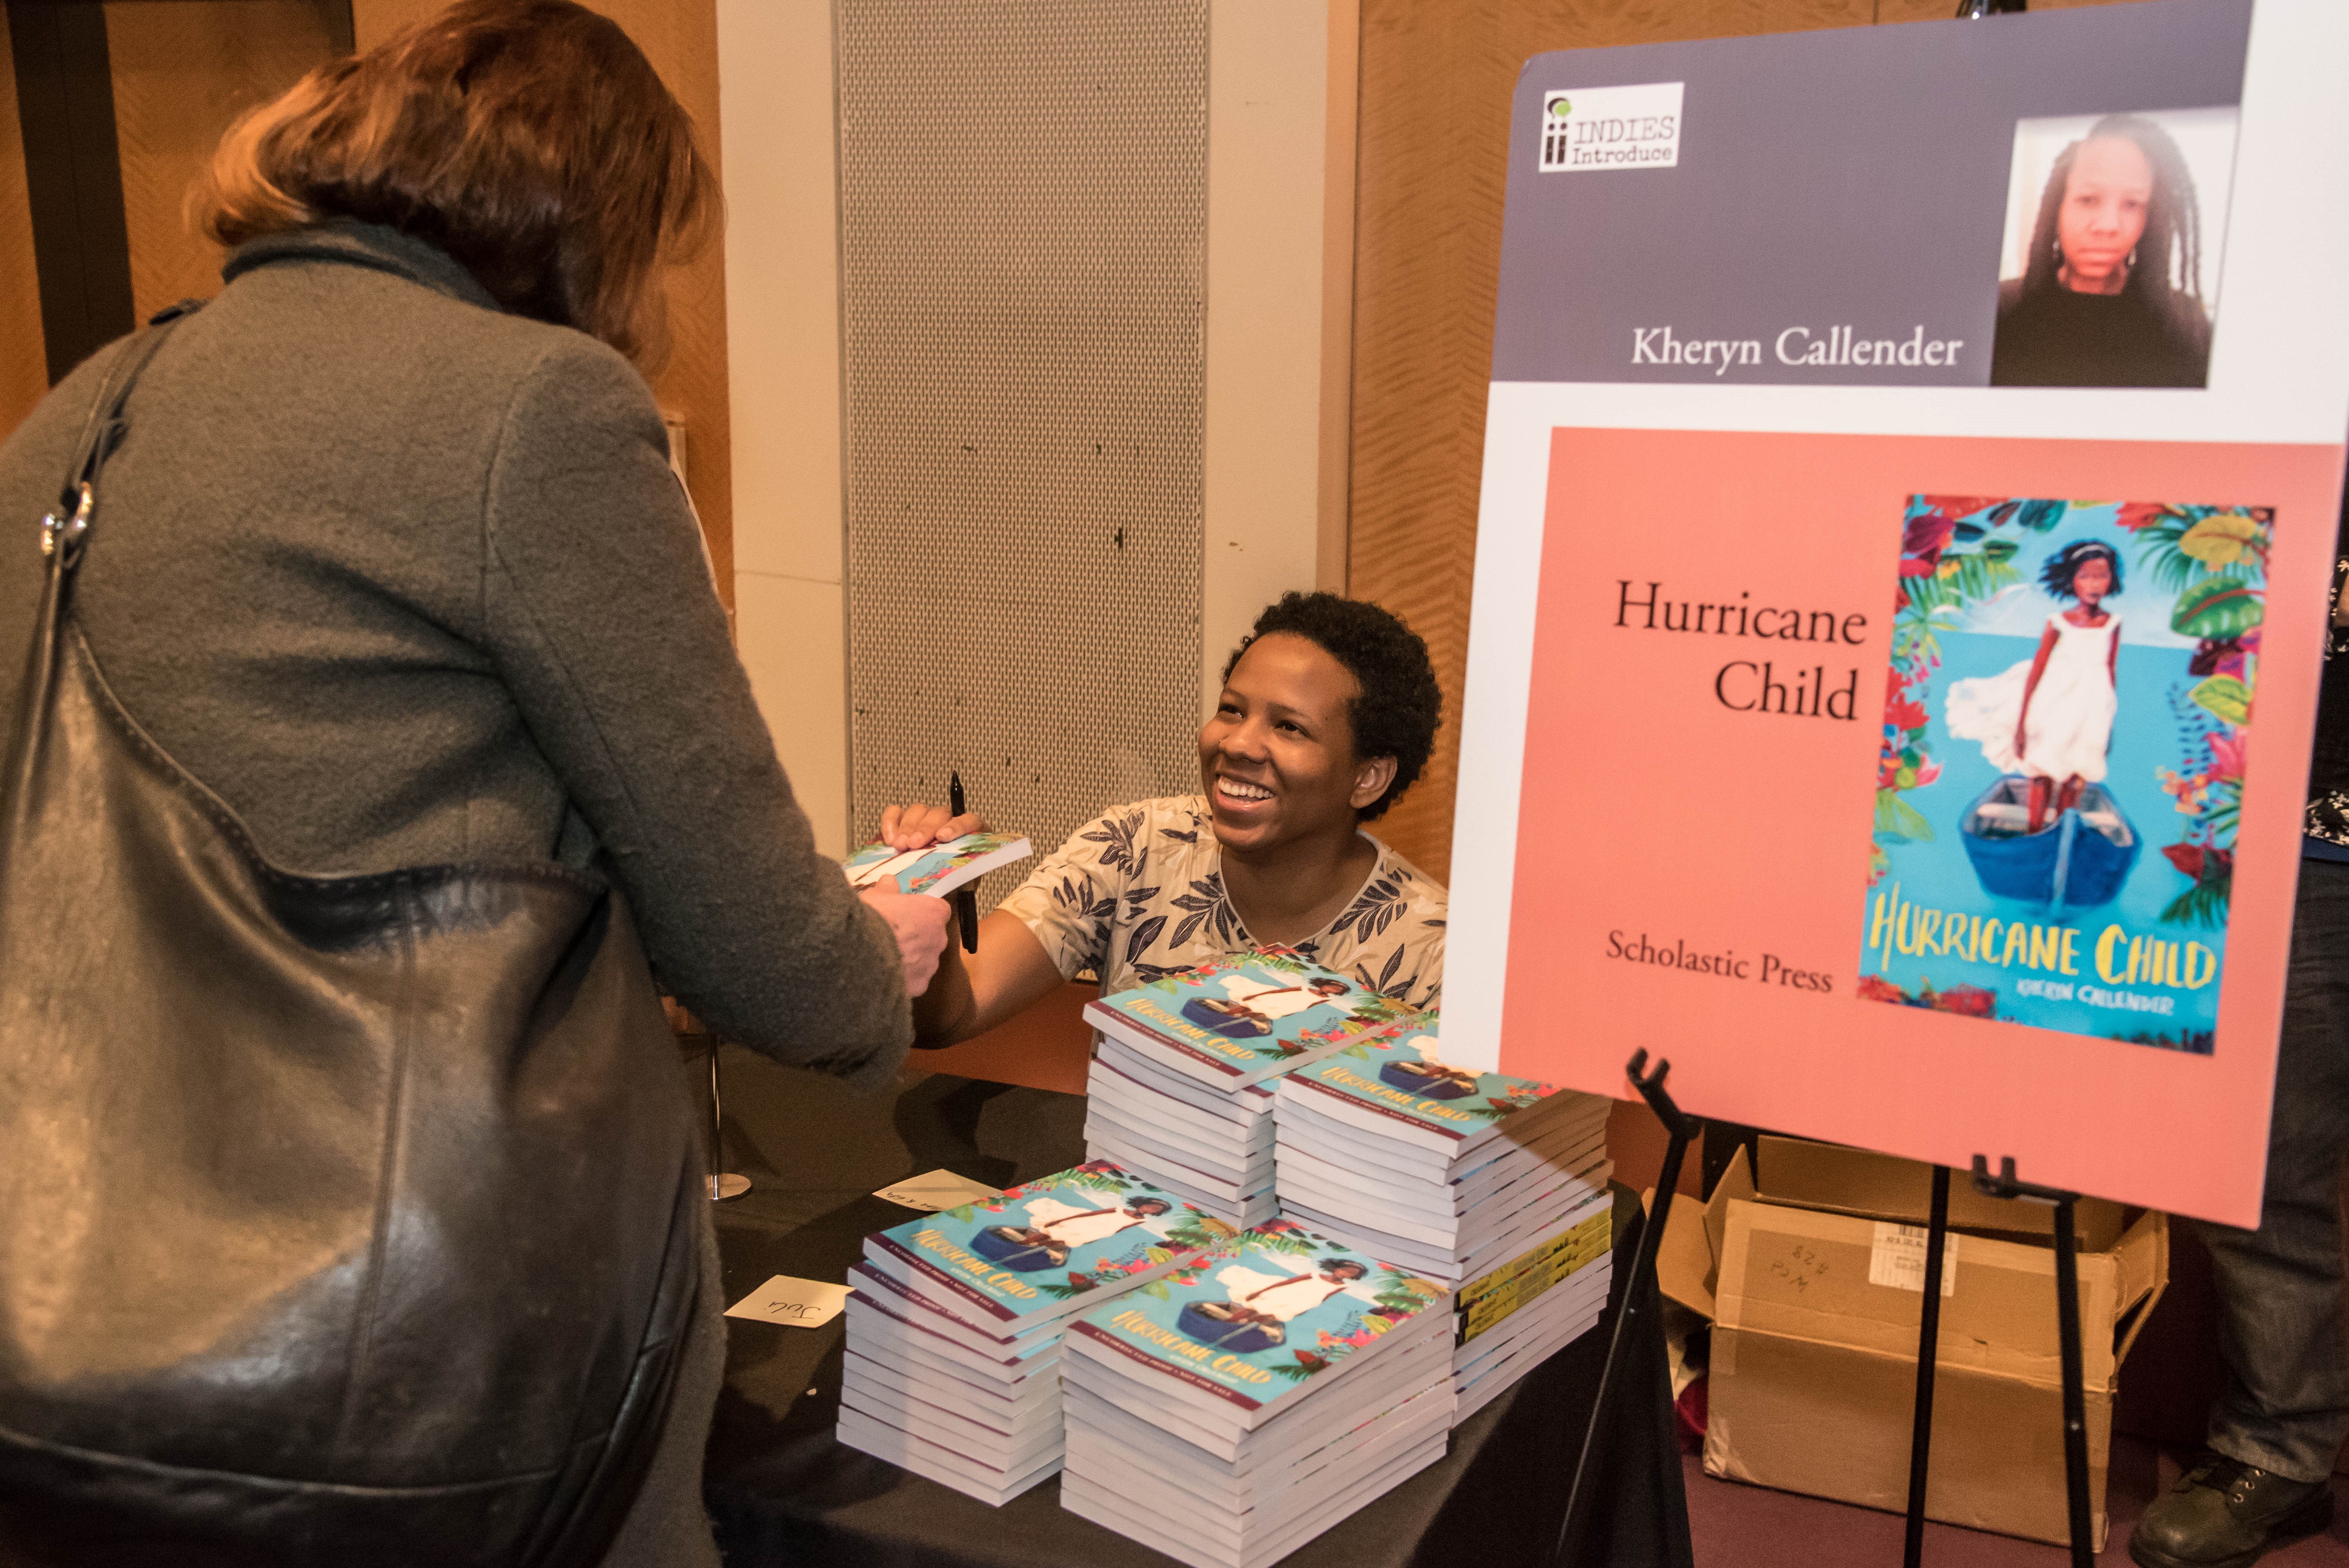 """Kheryn Callender signs copies of """"Hurricane Child"""" at the Author Reception."""